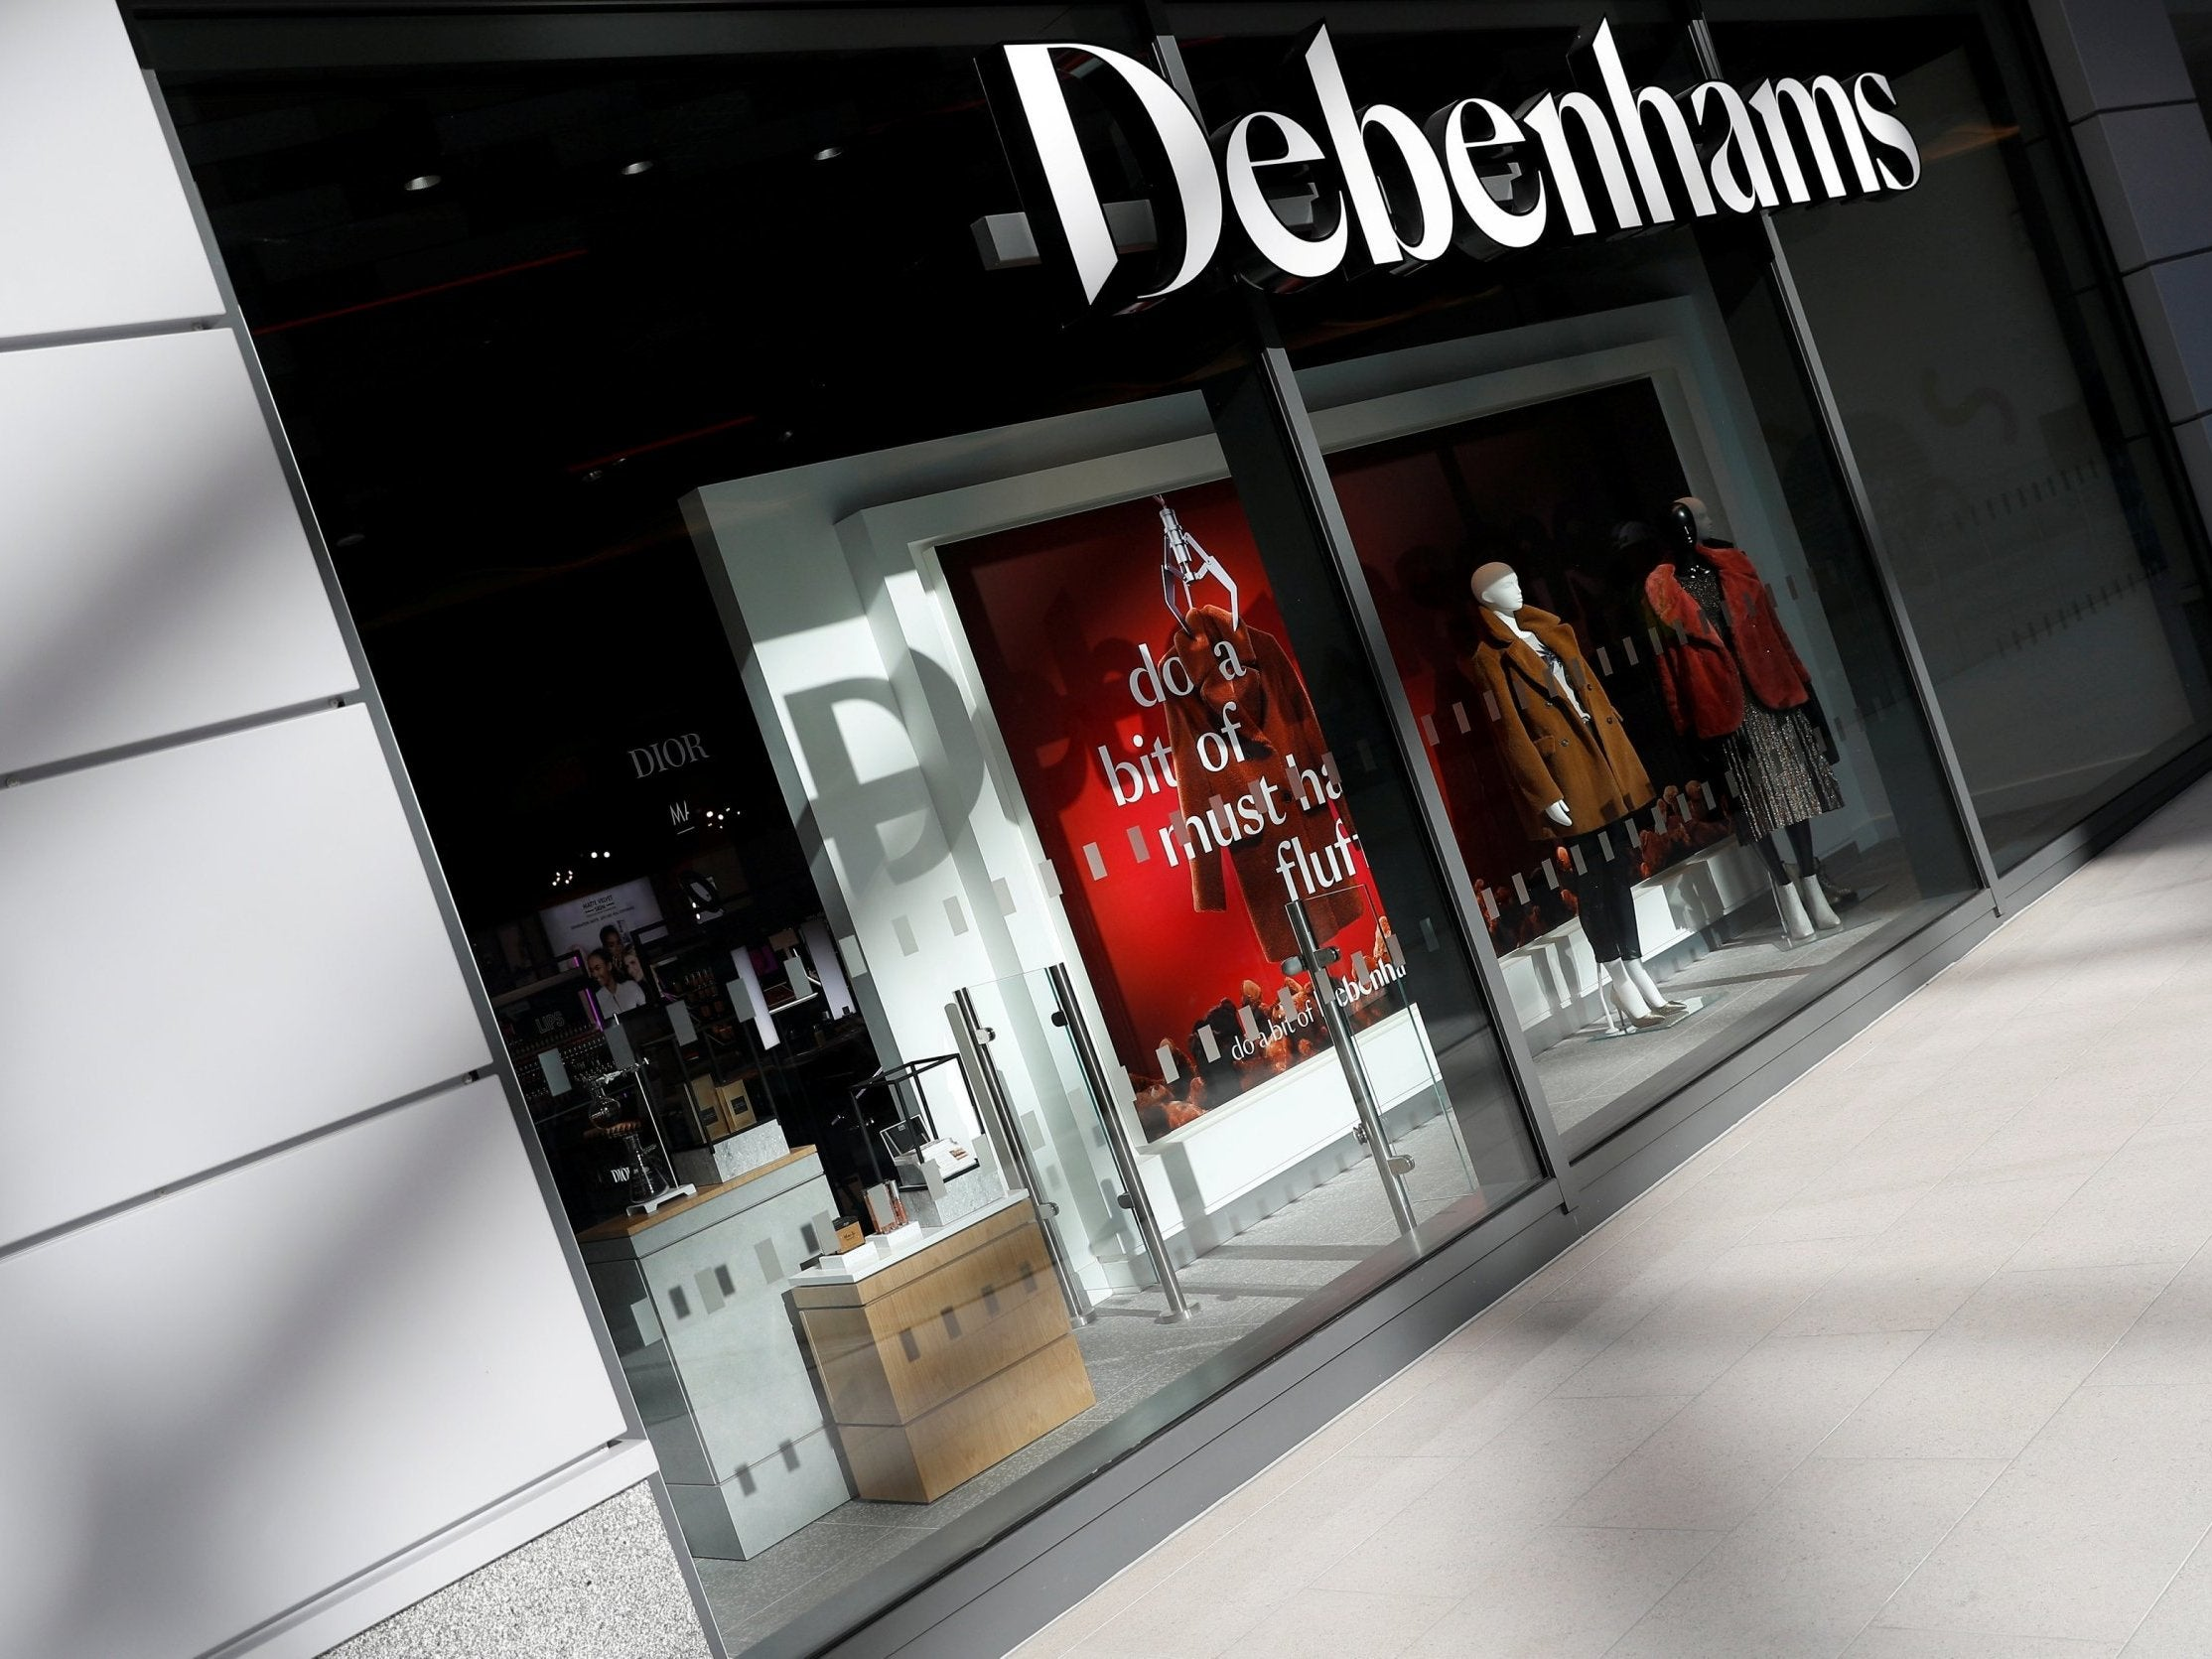 c2d317b4224 Debenhams falls into administration as lenders take control | The ...